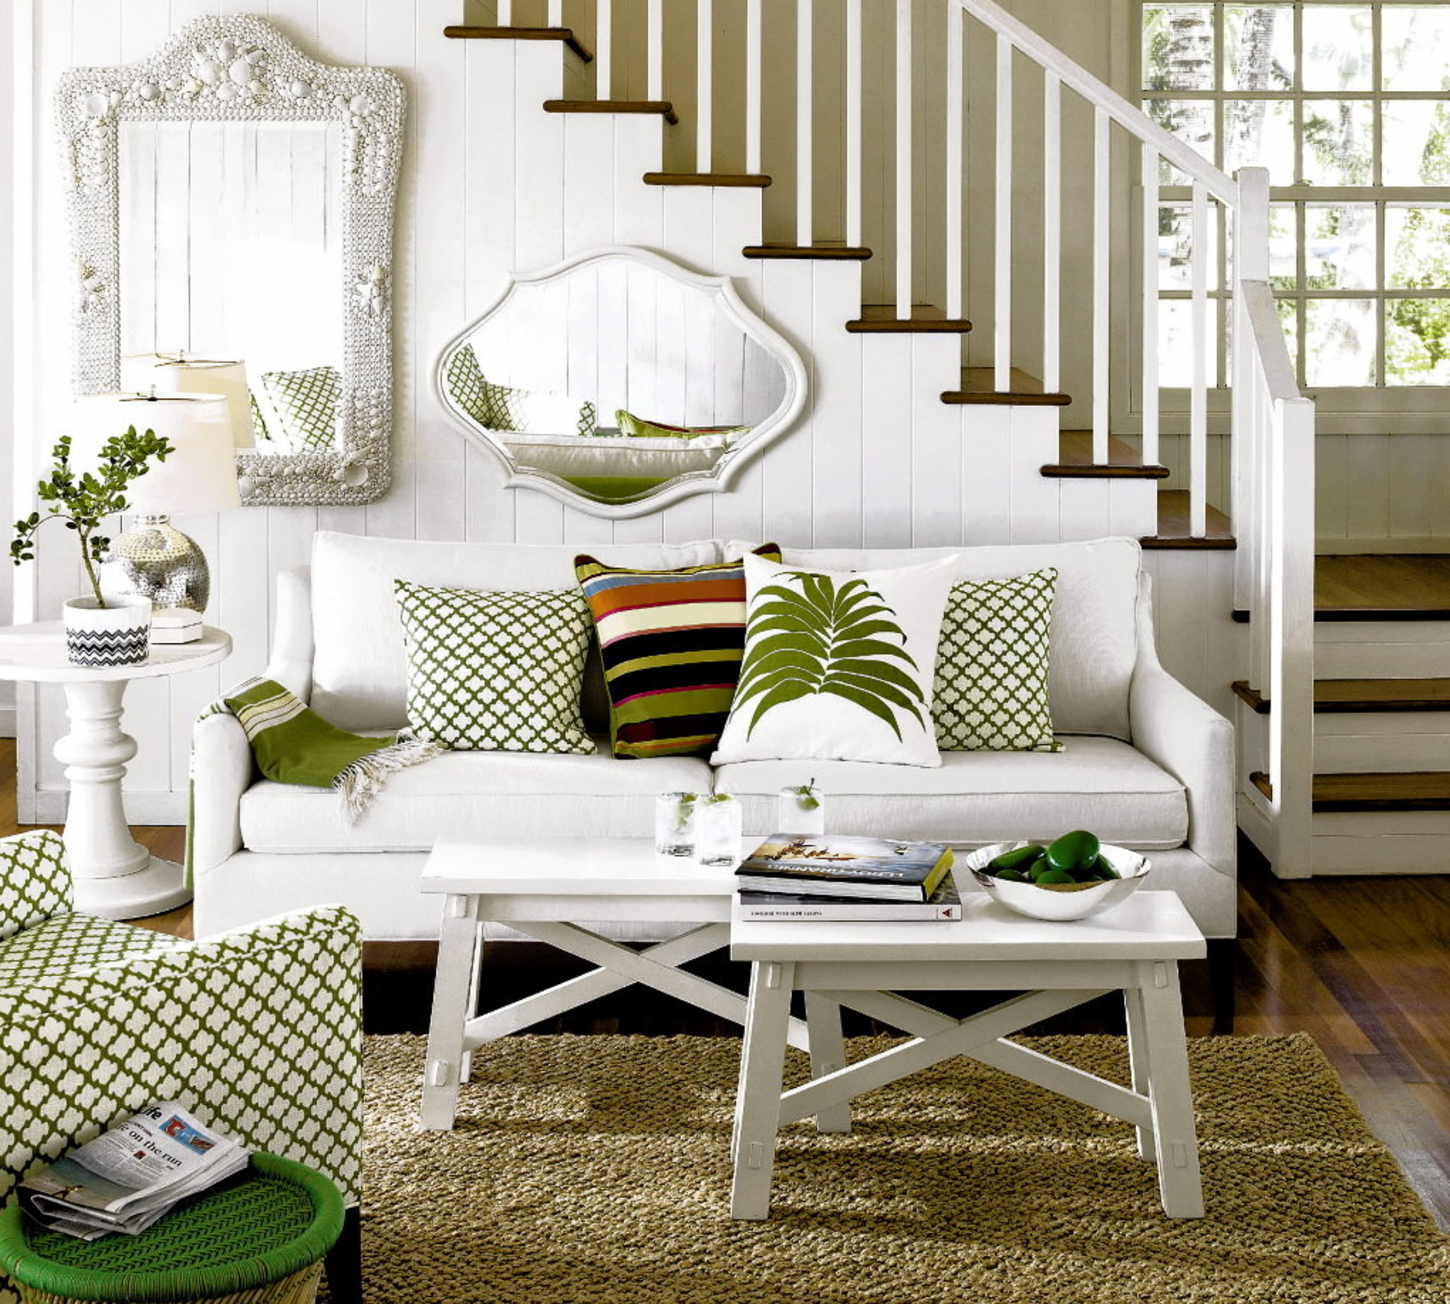 Summer Decor Ideas That Are Light On Your Pocket